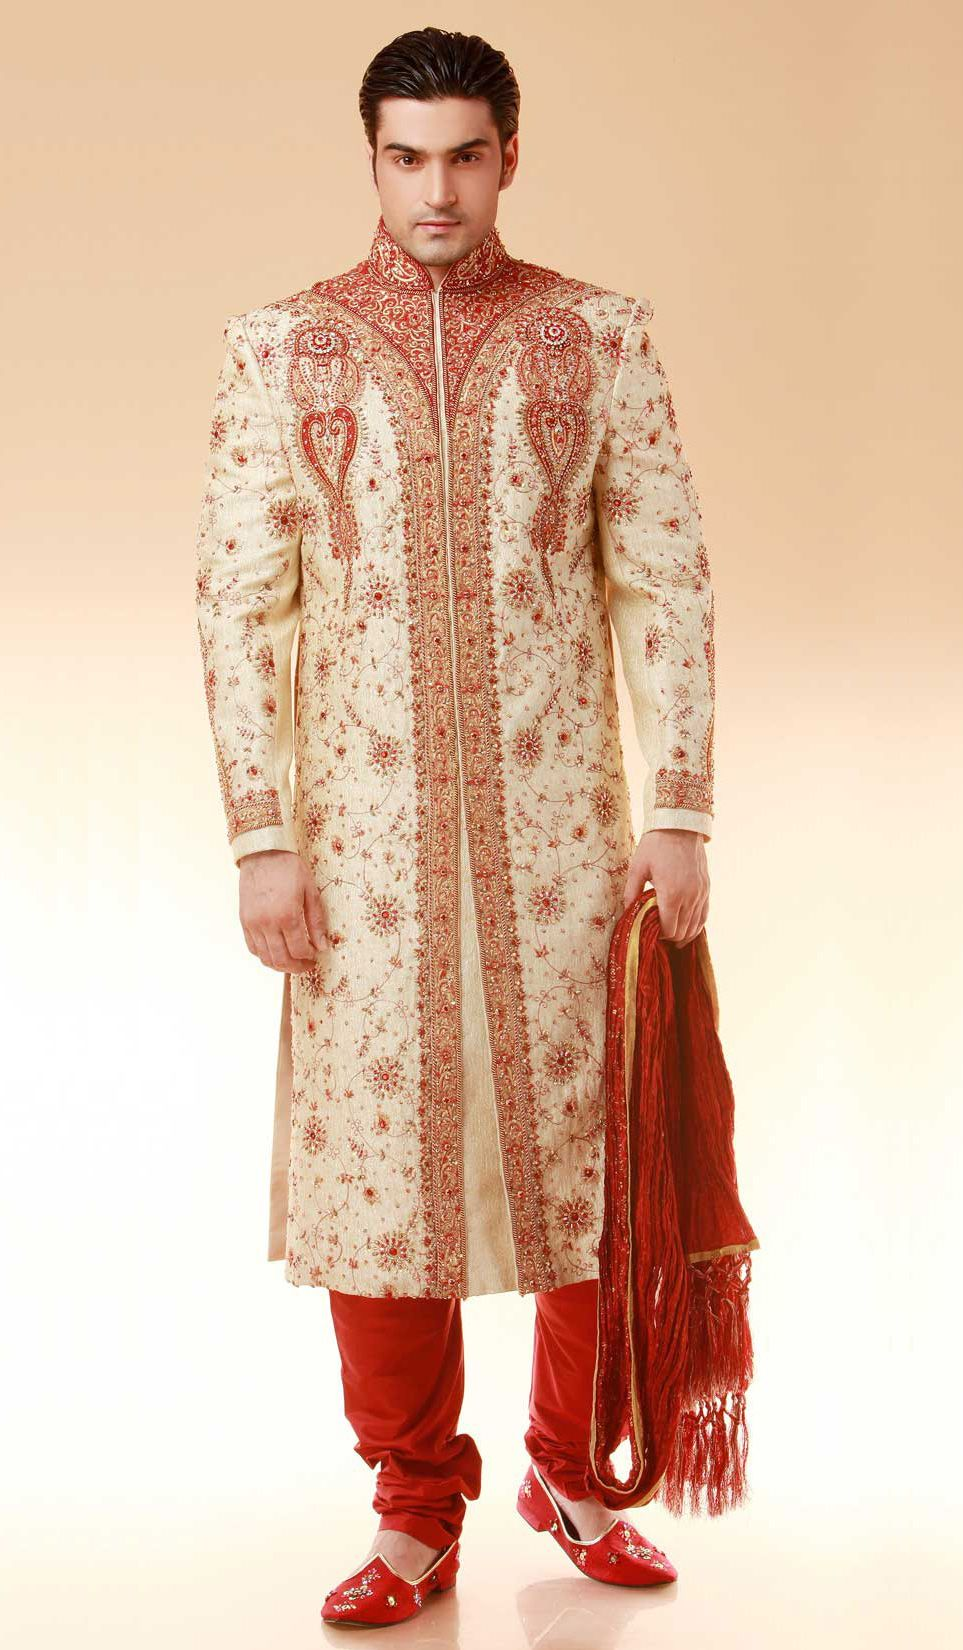 Buy Best Wedding Sherwani Online We Have A Huge Collection Of Varieties Of Wedding Clothes For